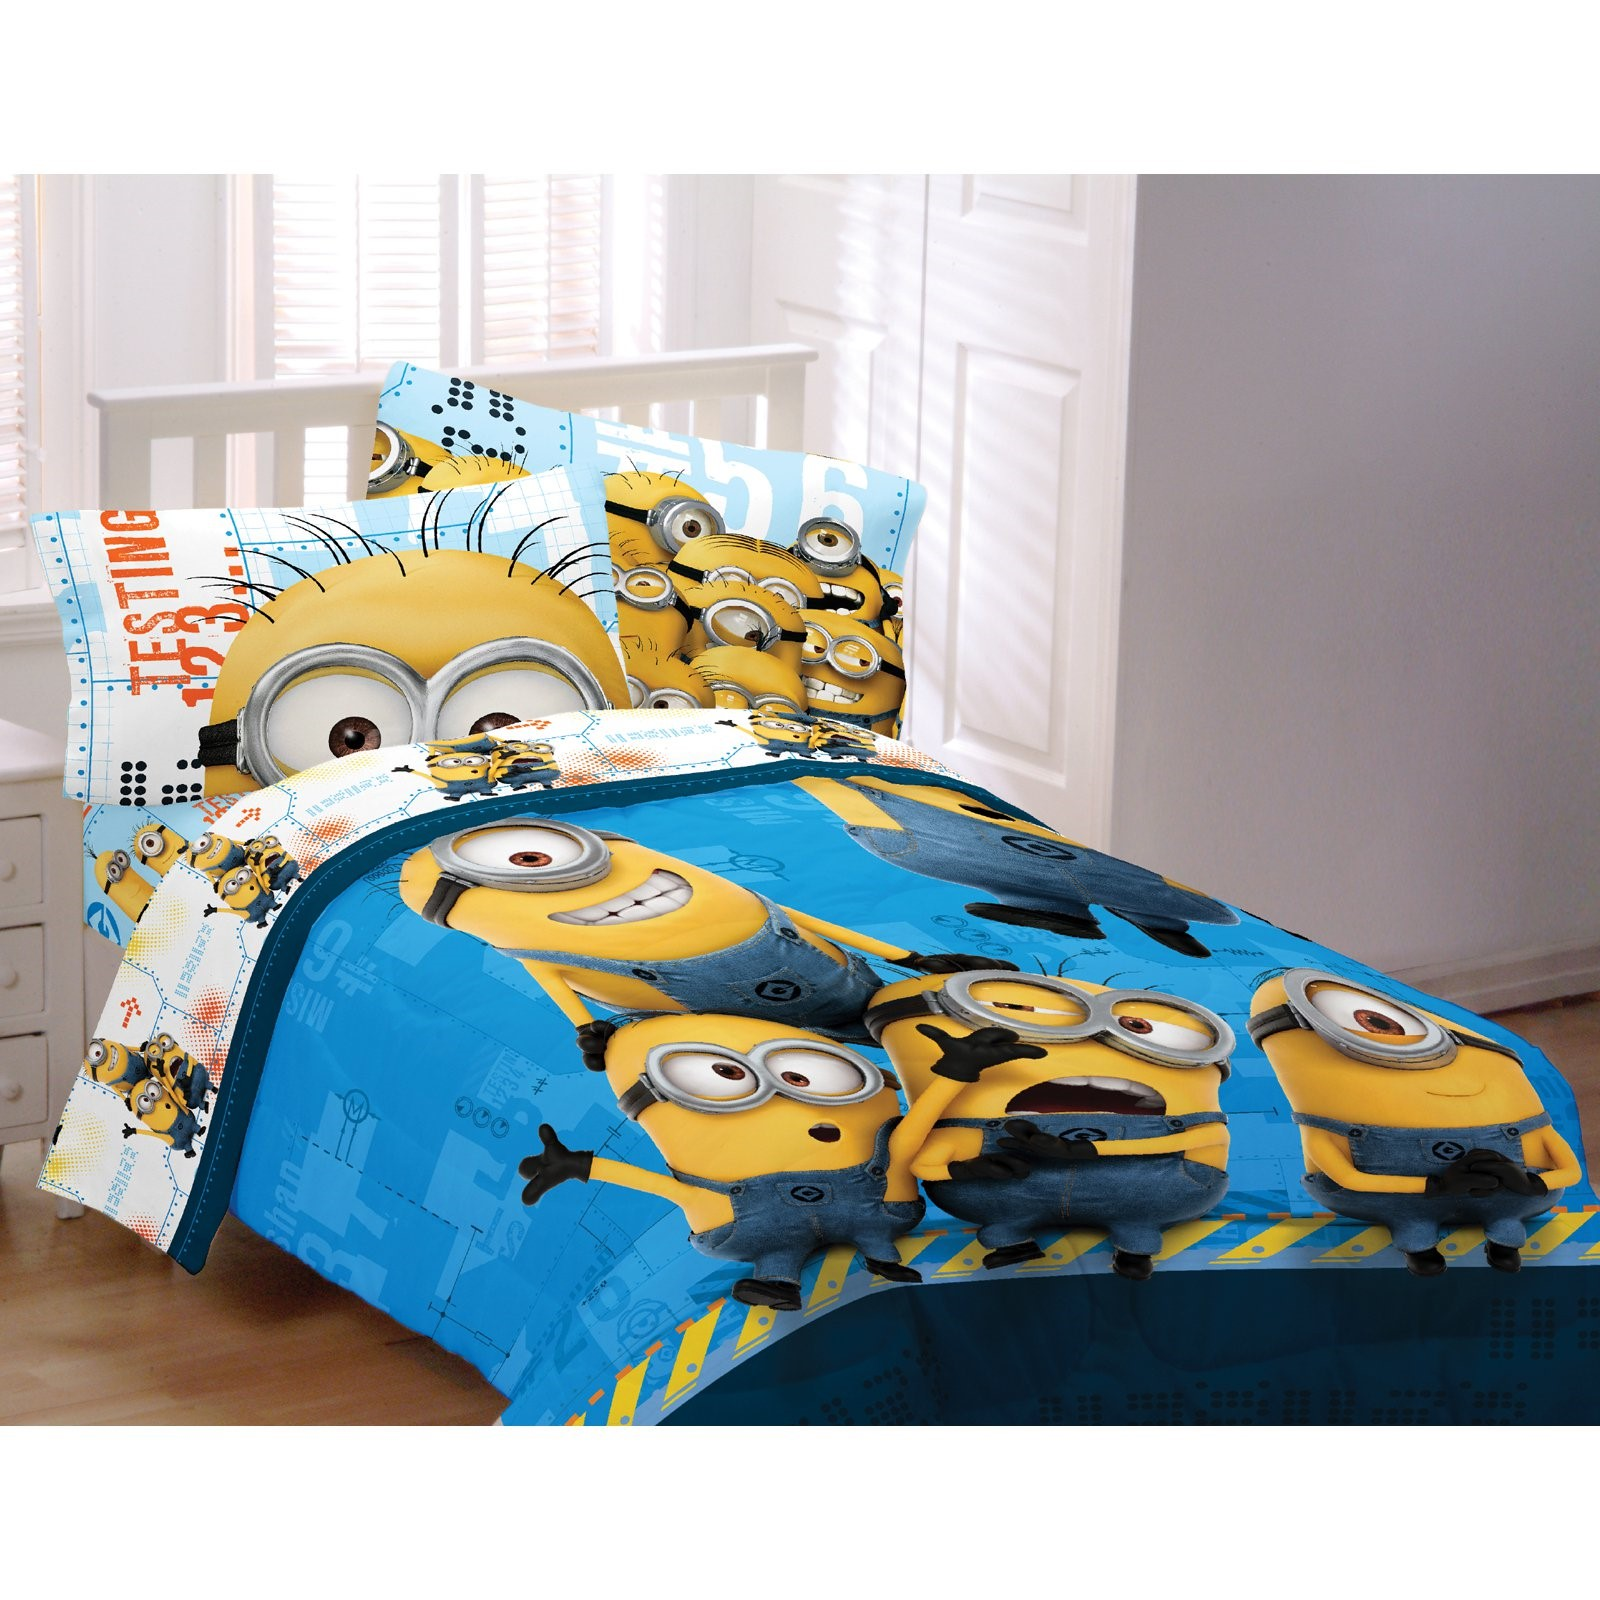 "Universal Minions 72"" x 86"" Twin or Full Comforter, 1 Each"